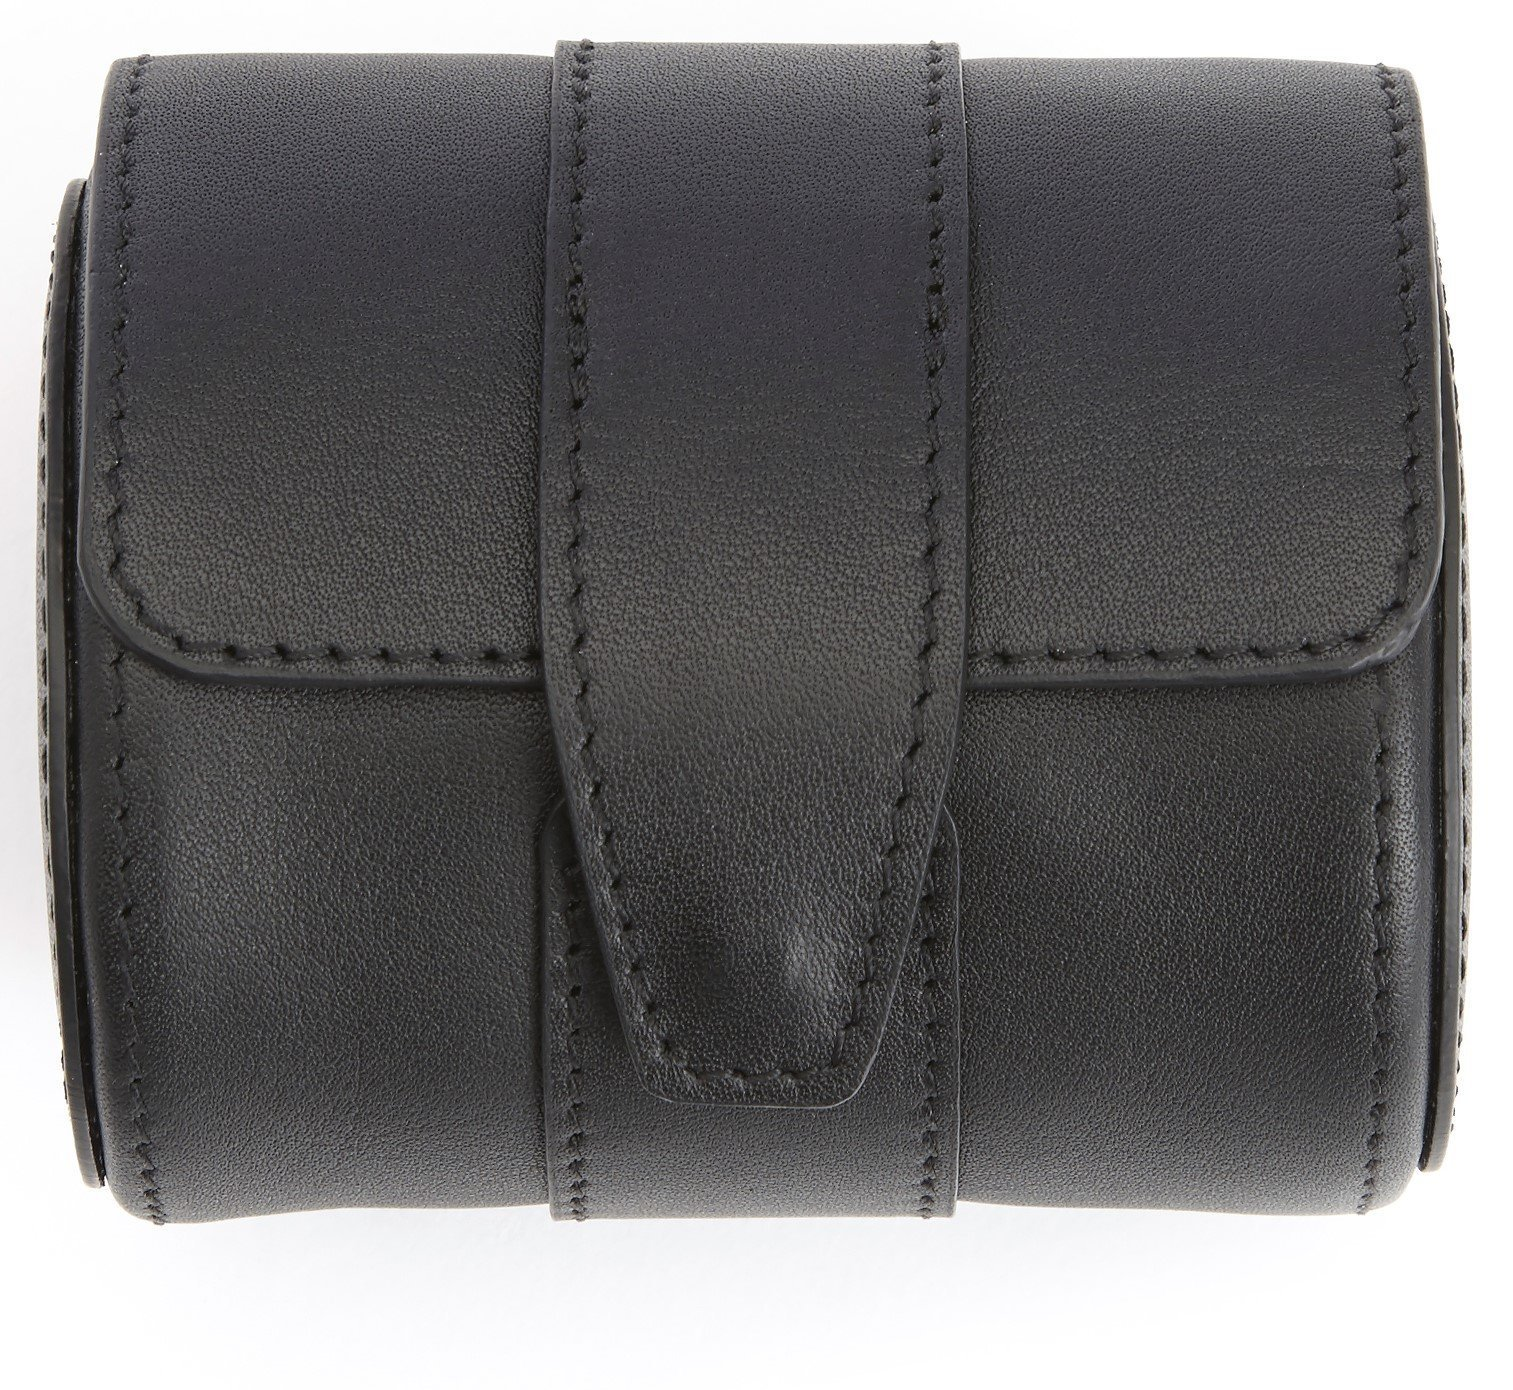 ROYCE Executive Travel Watch Roll in Smooth Genuine Leather with Suede Interior, Fits 1 Watch - Black